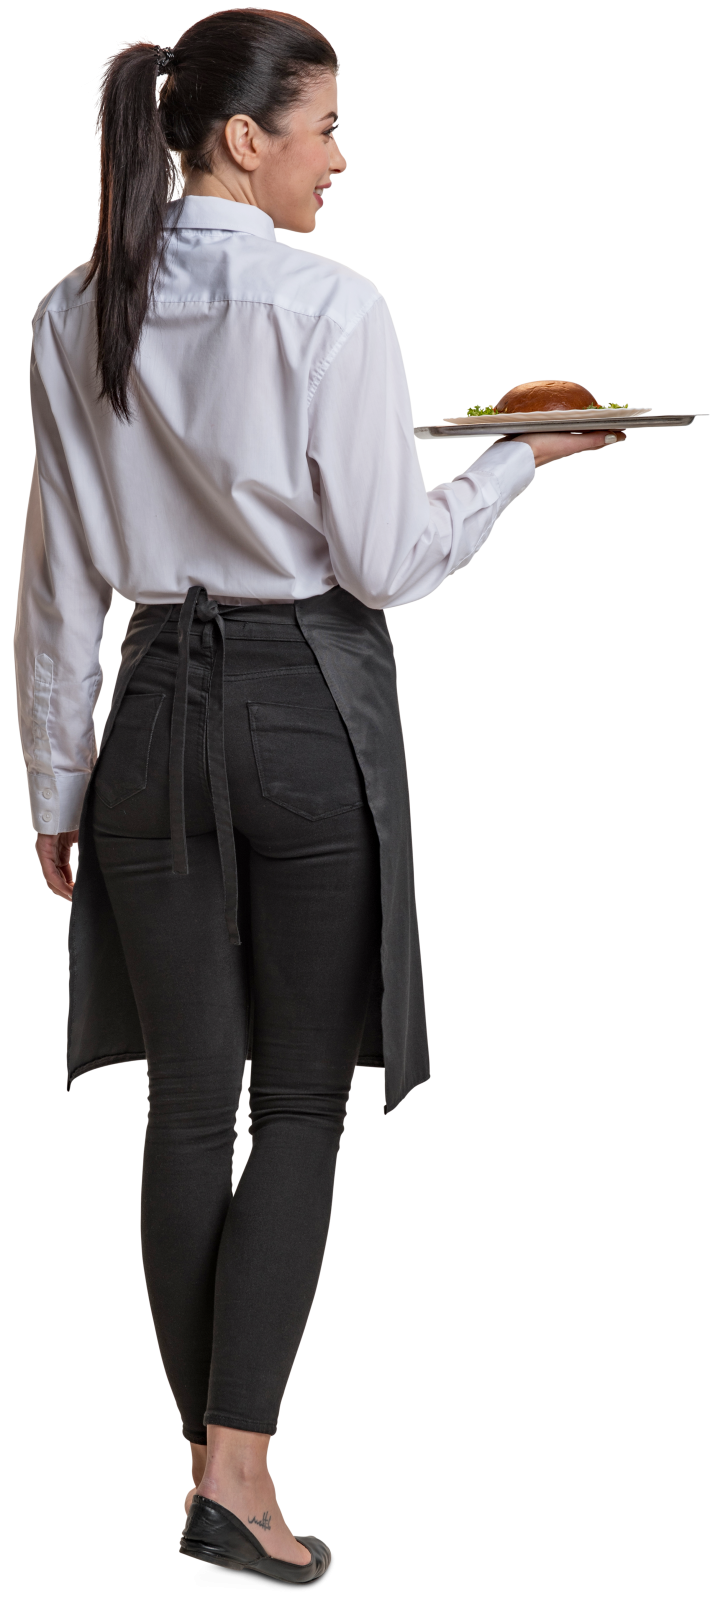 Business people walking away png. Cut out woman waitress